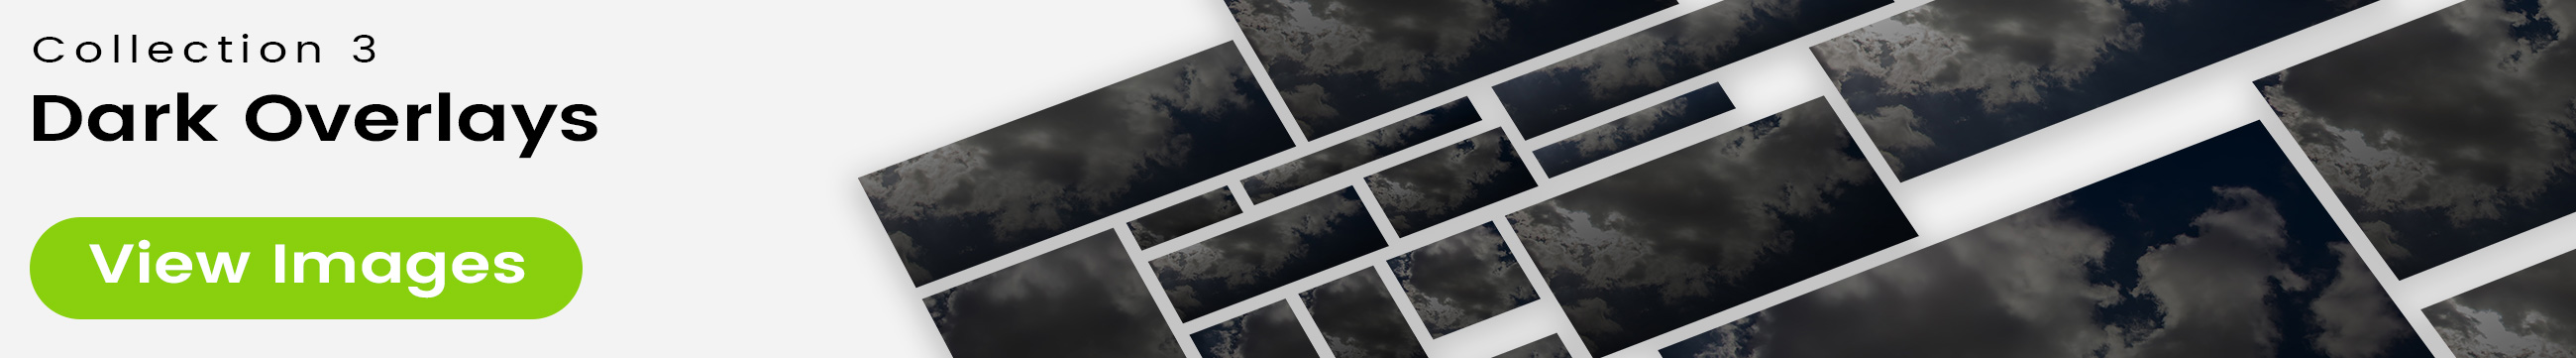 See 25 bonus images included with clouds stock image 9503. Collection 3 of 4 features a dark overlay design.